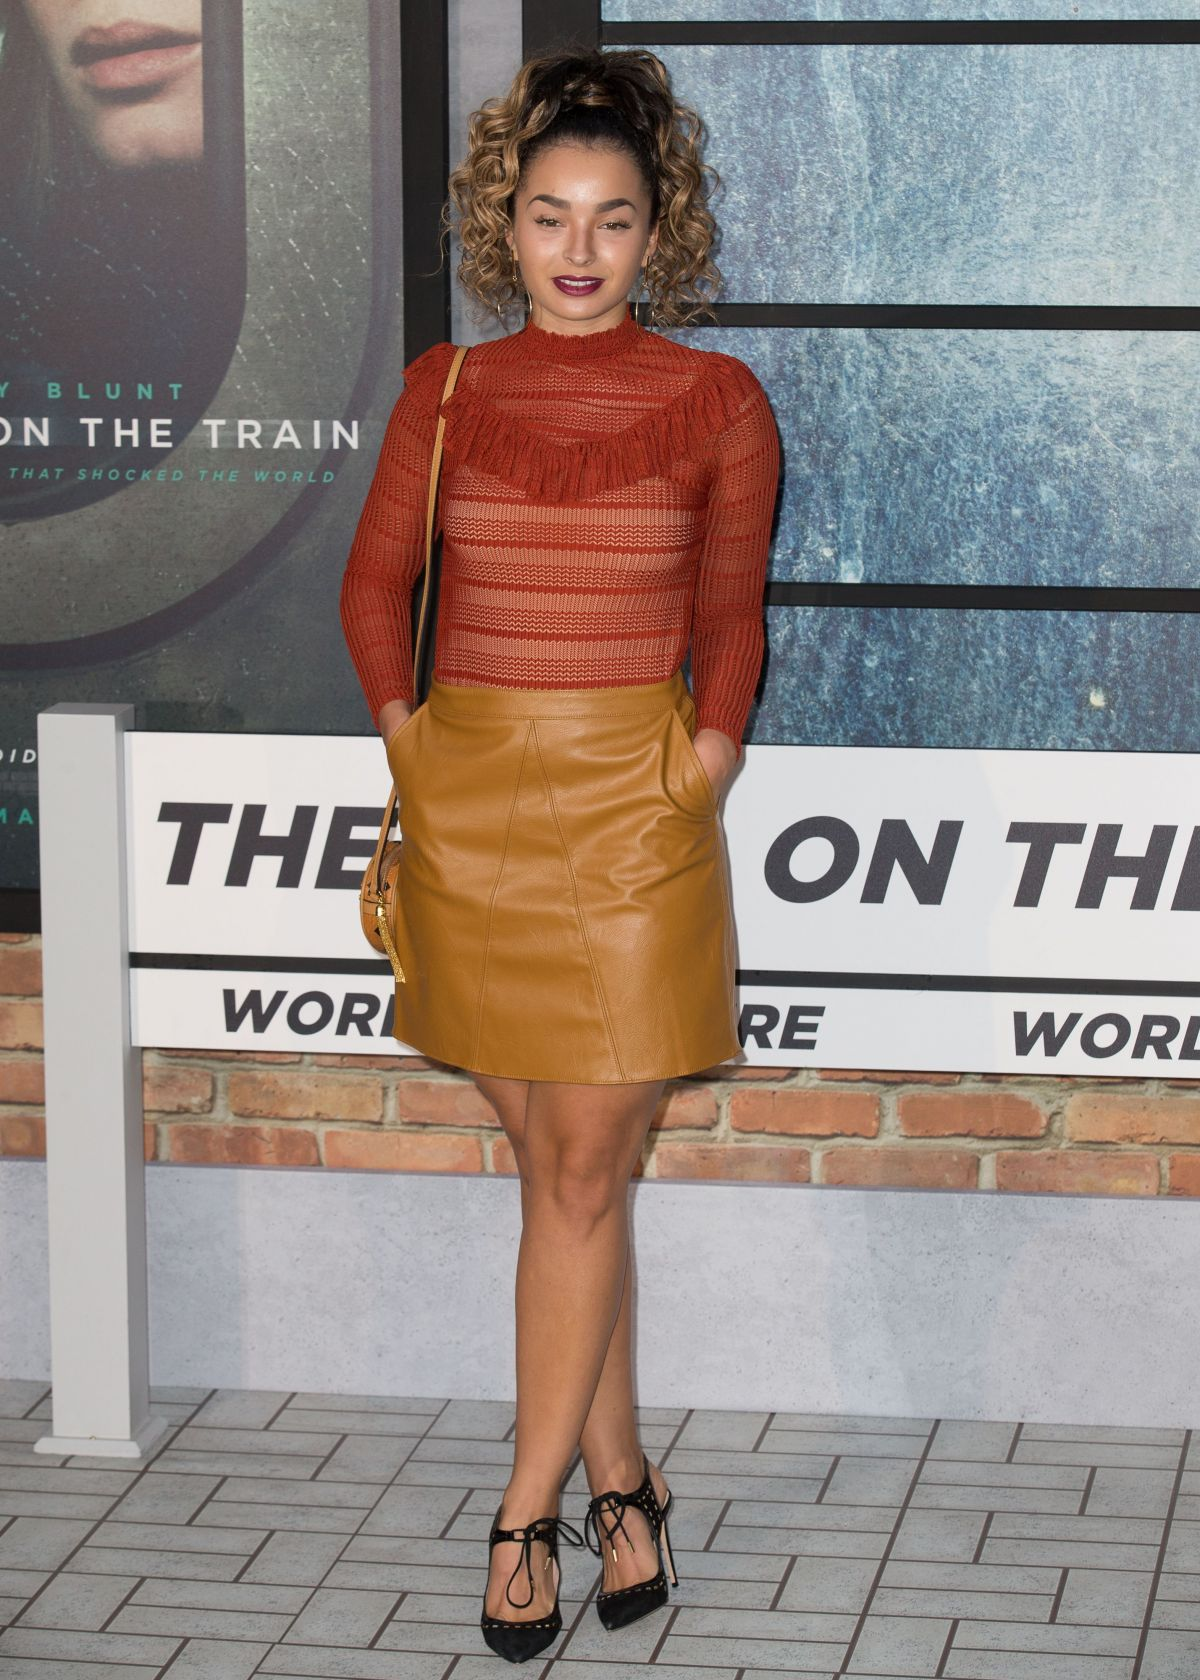 ELLA EYRE at 'The Girl on the Train' Premiere in London 09/20/2016